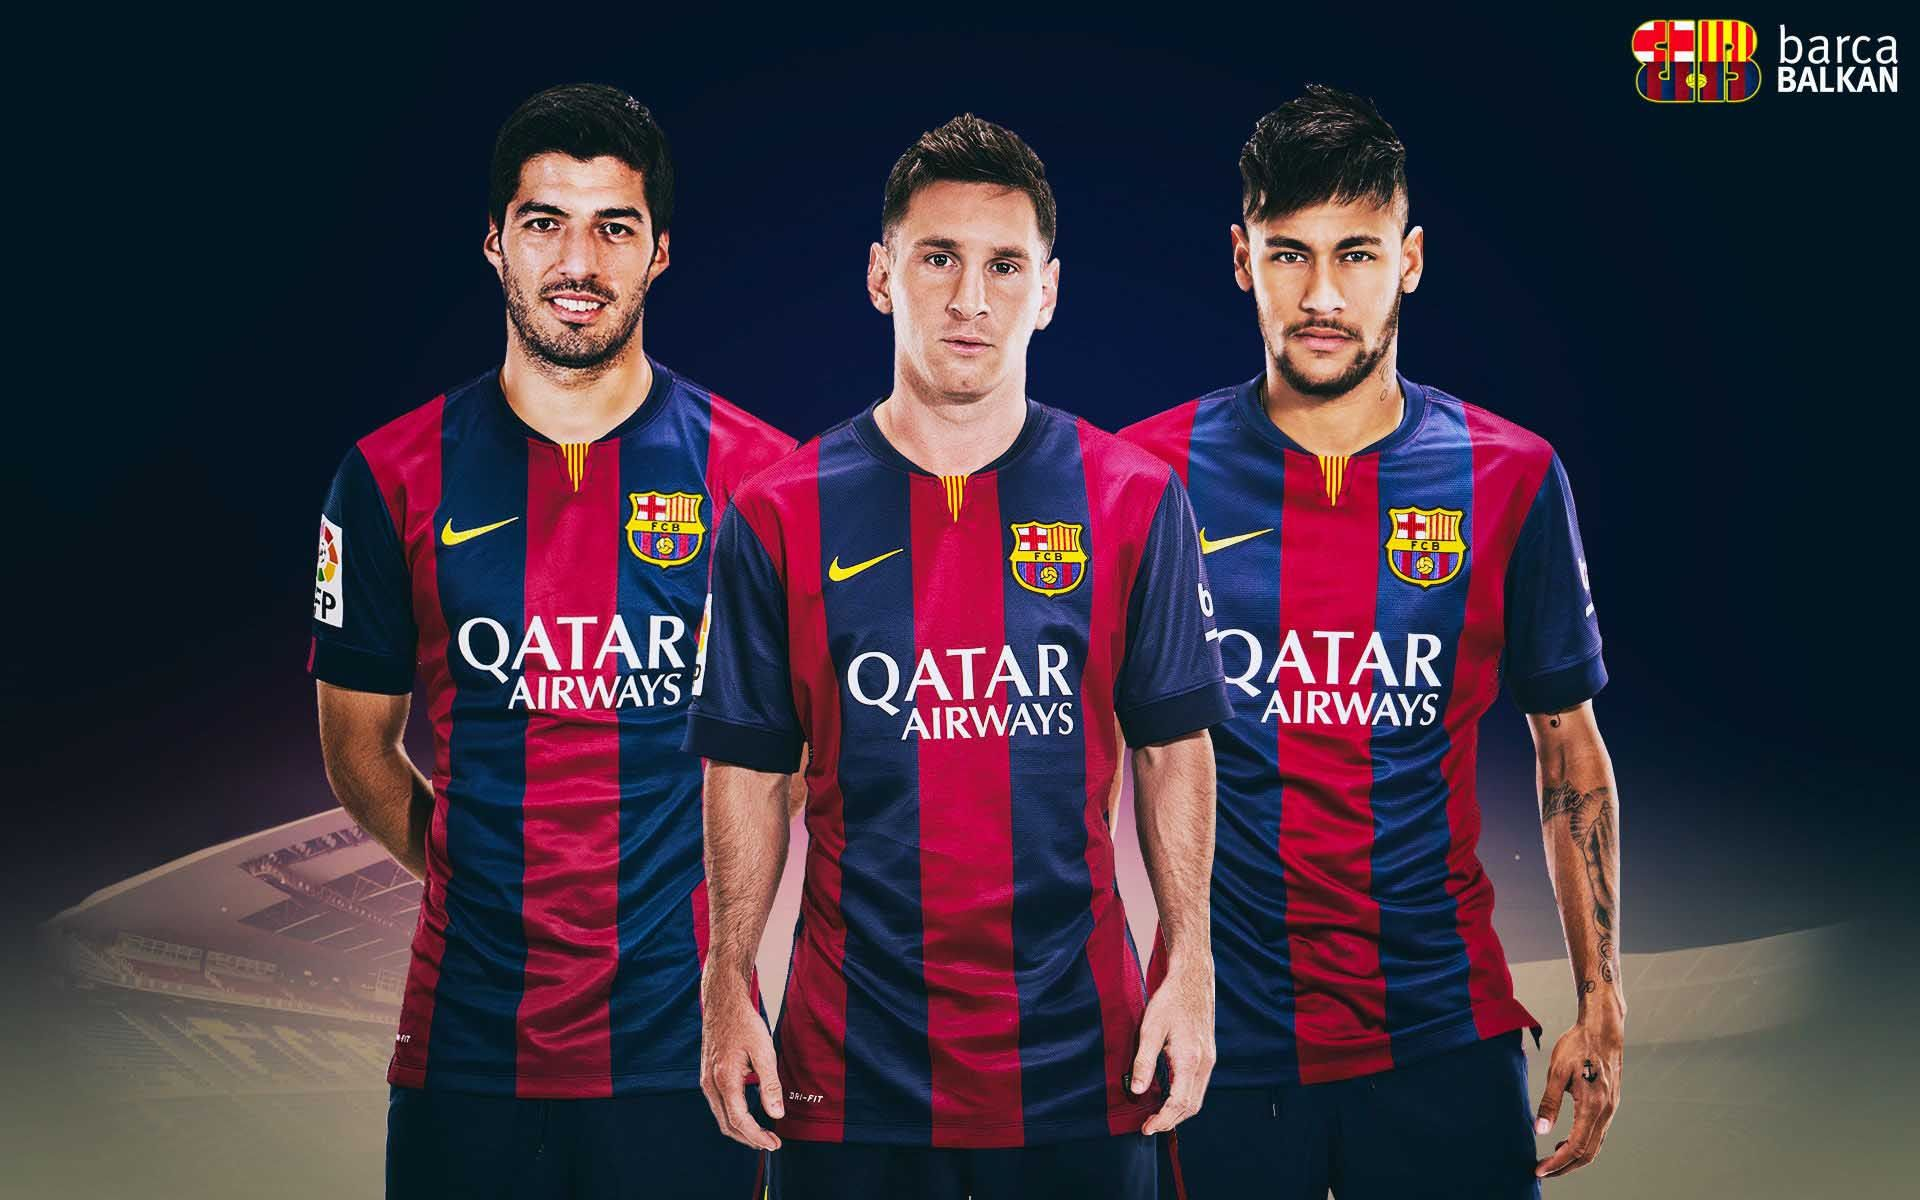 Sport Neymar Suarez Messi Football Players Download Images Wallpaper 1920x1200 Cool Pc Wallpapers Messi And Neymar Neymar Messi